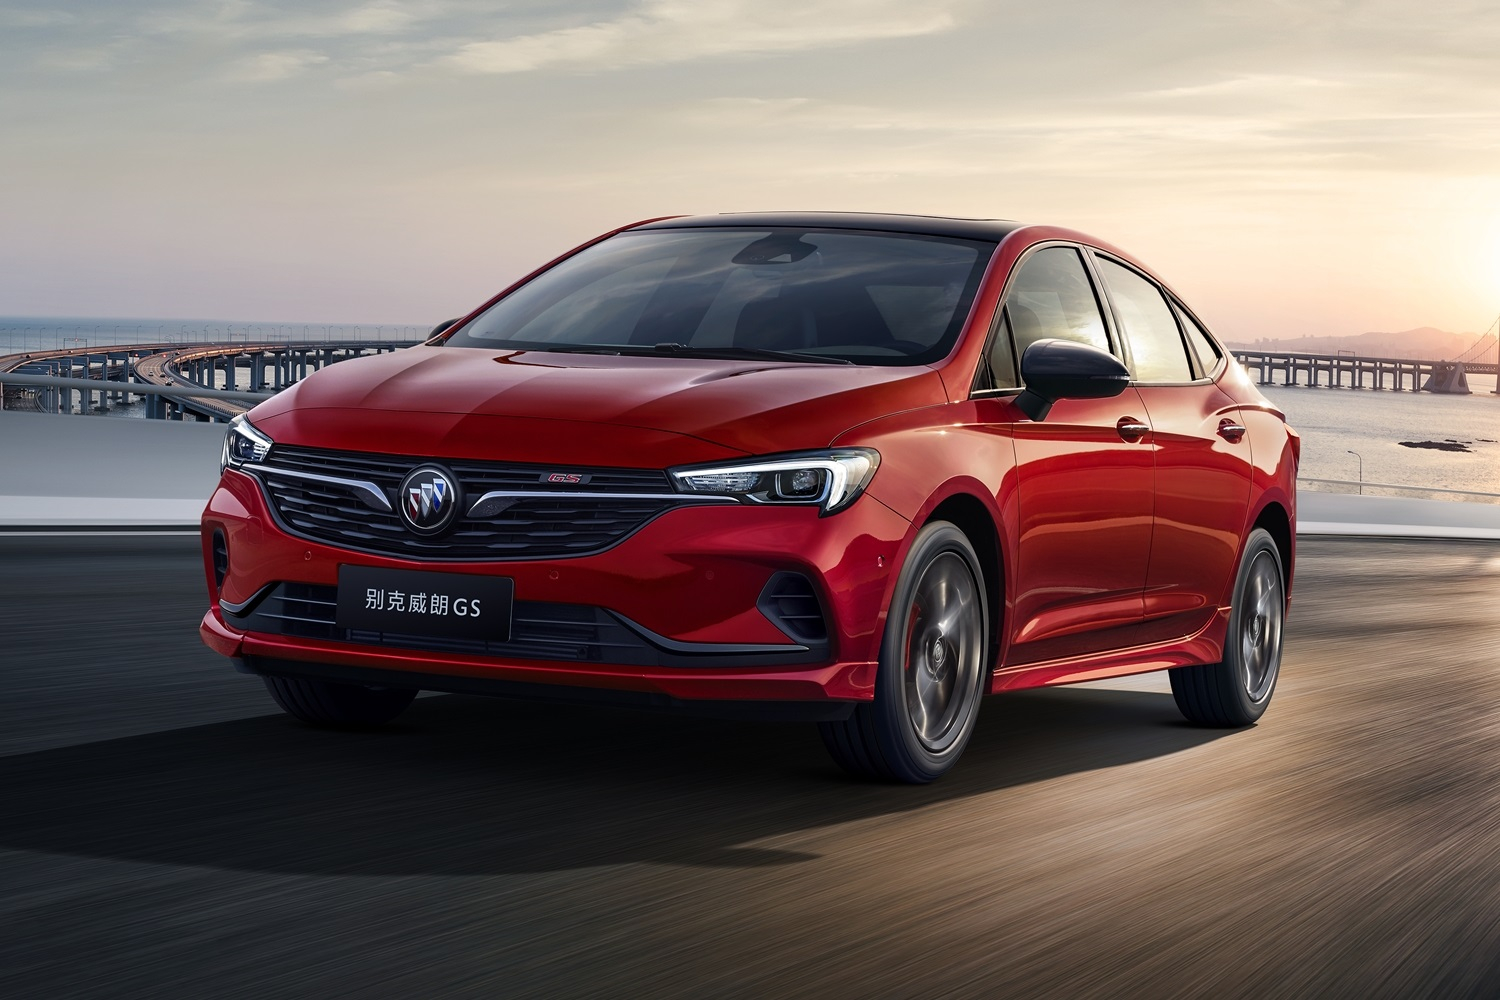 New 2021 Buick Verano Gs Launches In China | Gm Authority 2021 Buick Verano Trim Levels, Performance Parts, Cost